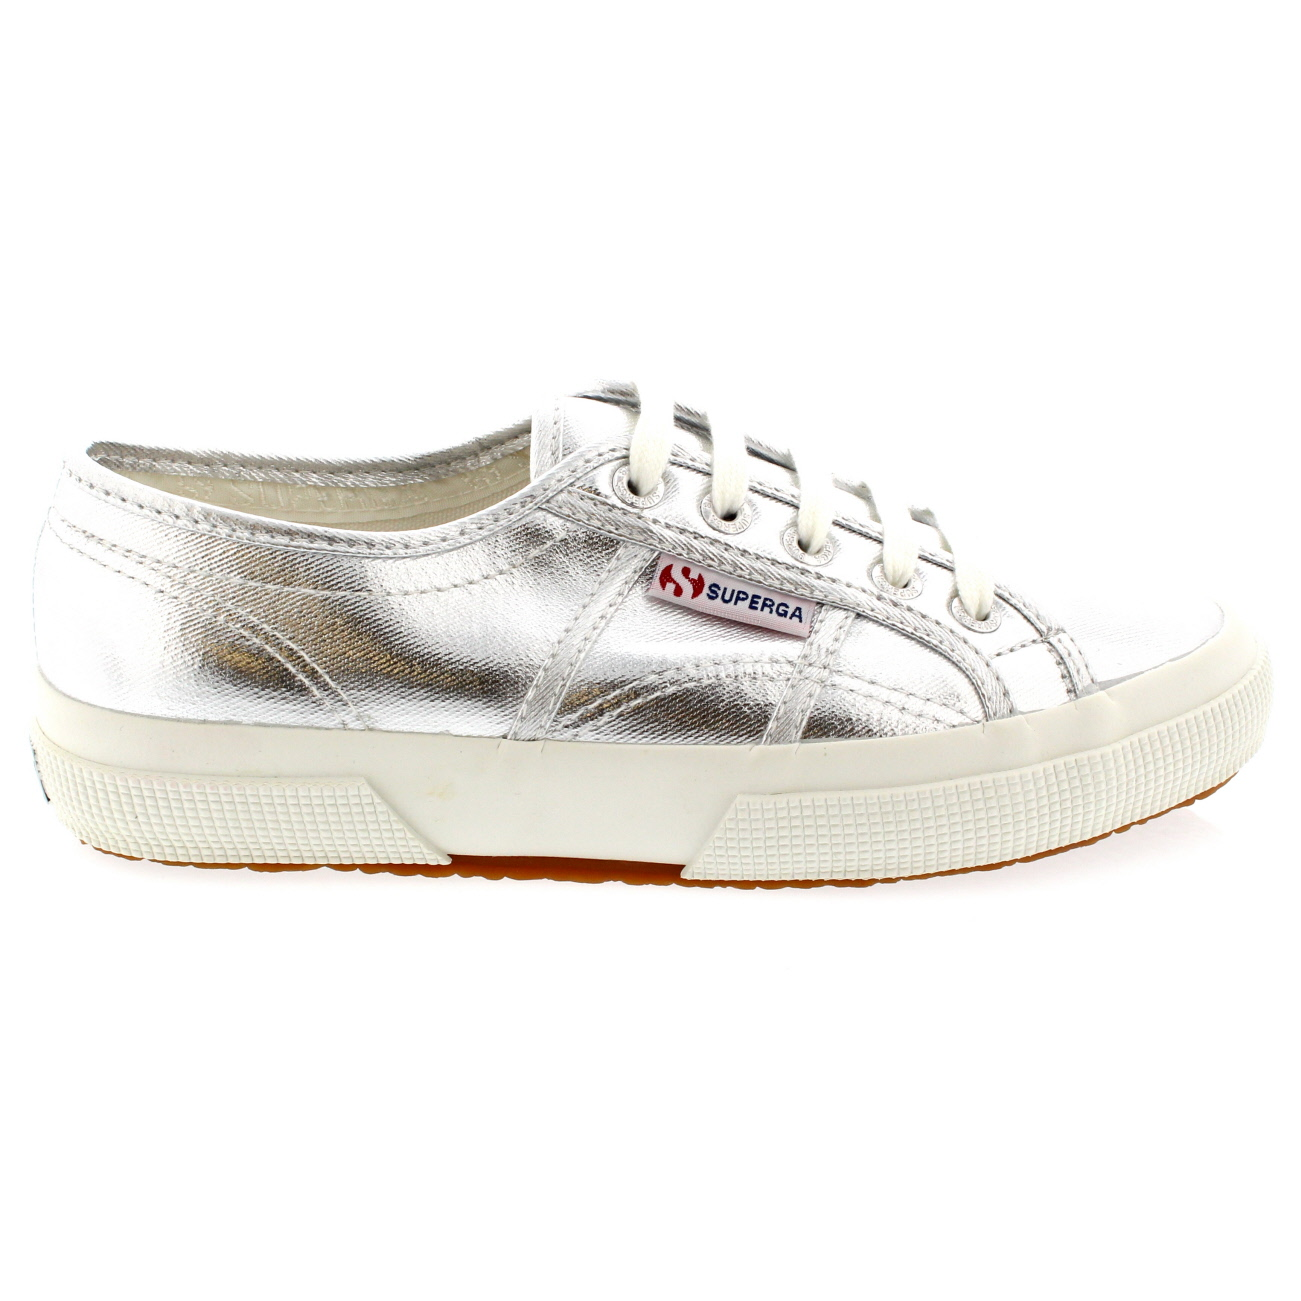 Superga Metallic Low-Top Sneakers buy sale online 90shNM1z